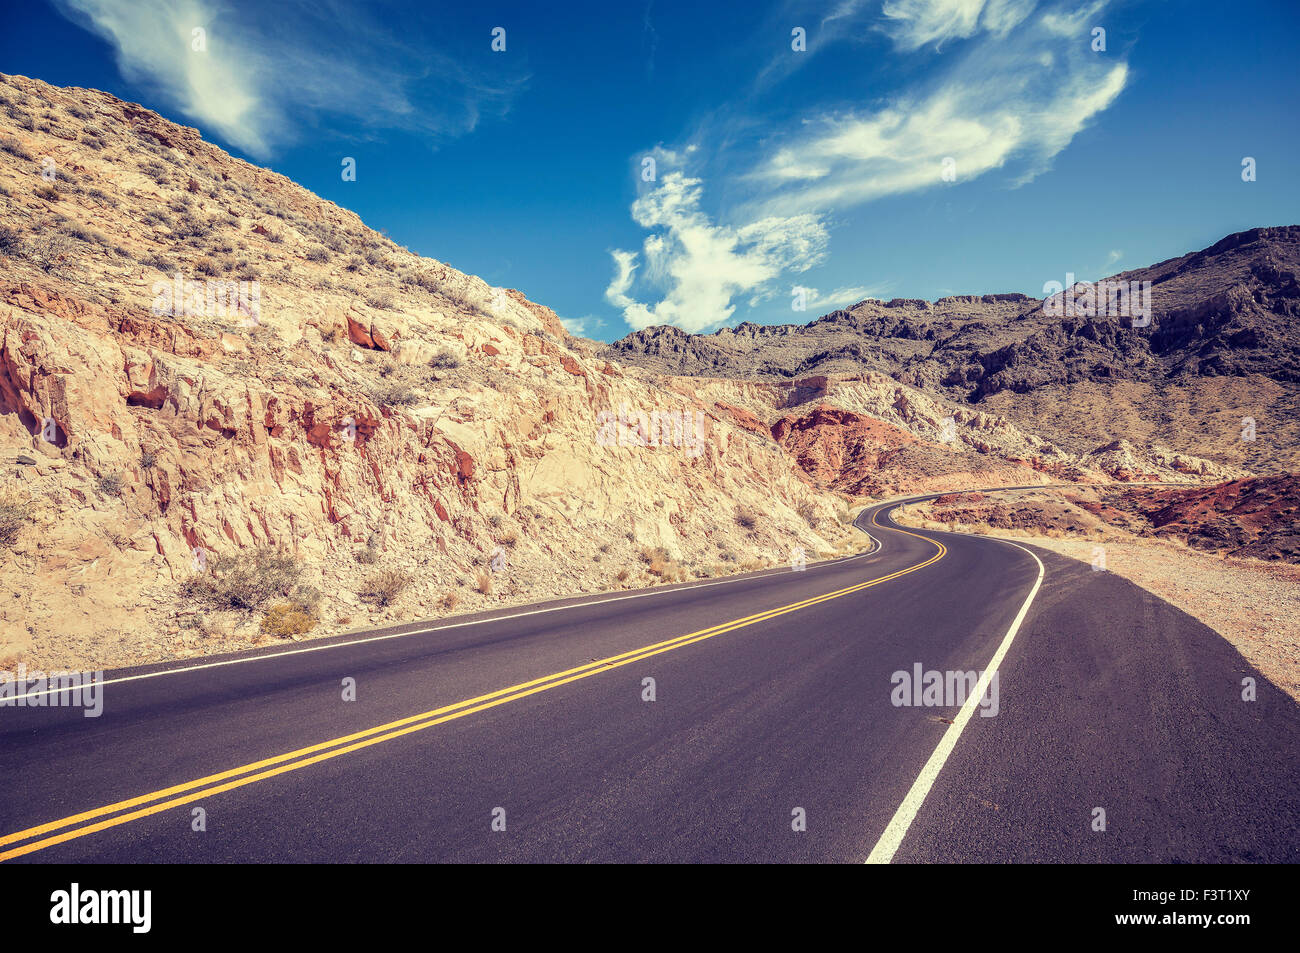 Vintage retro stylized country road, USA. - Stock Image